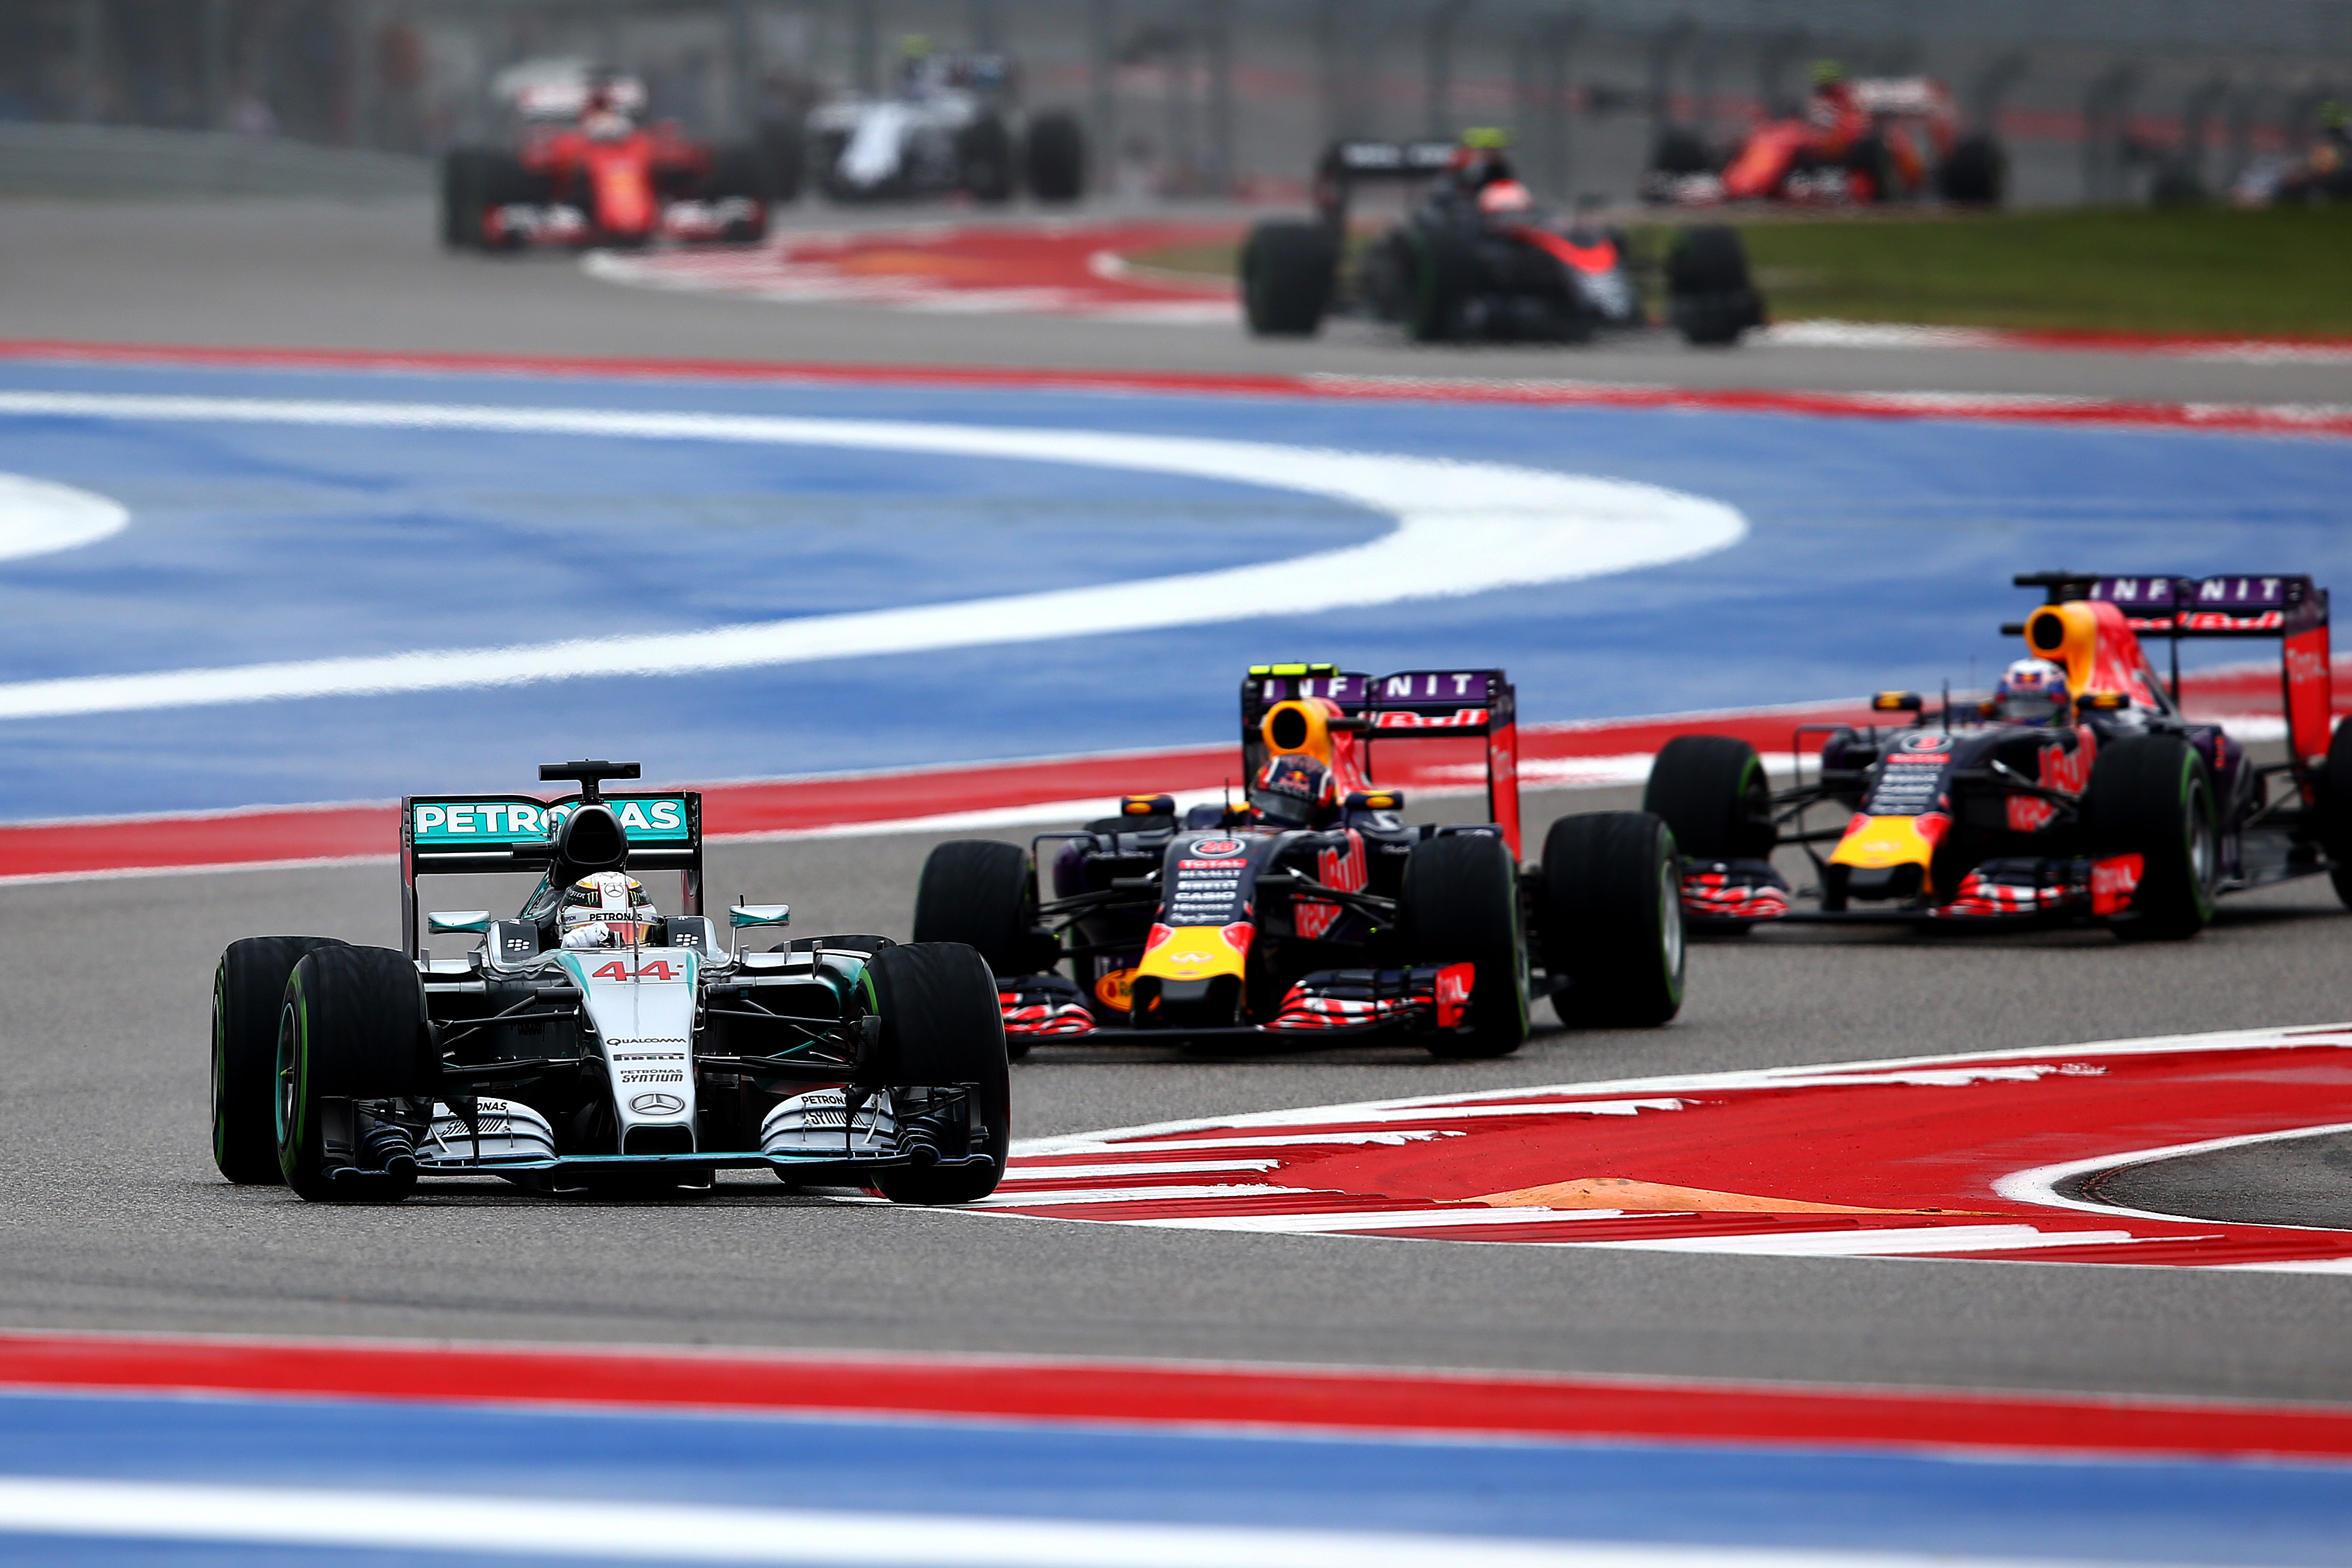 hires wallpapers pictures 2015 us f1 gp | f1-fansite